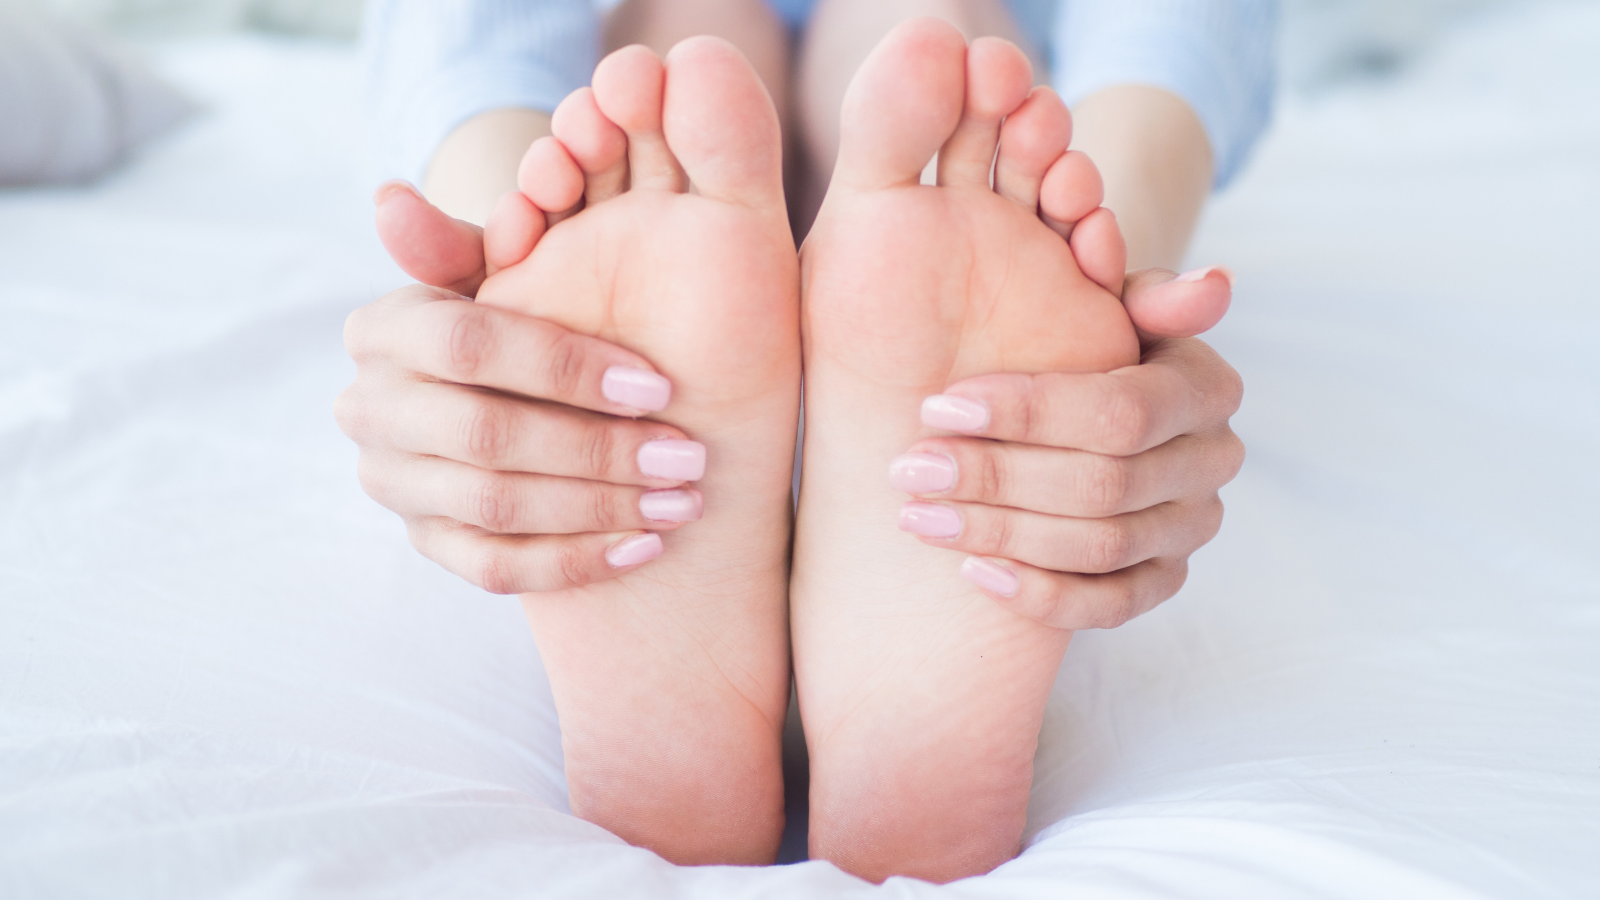 Young woman on bed massaging her feet for better health and wellbeing